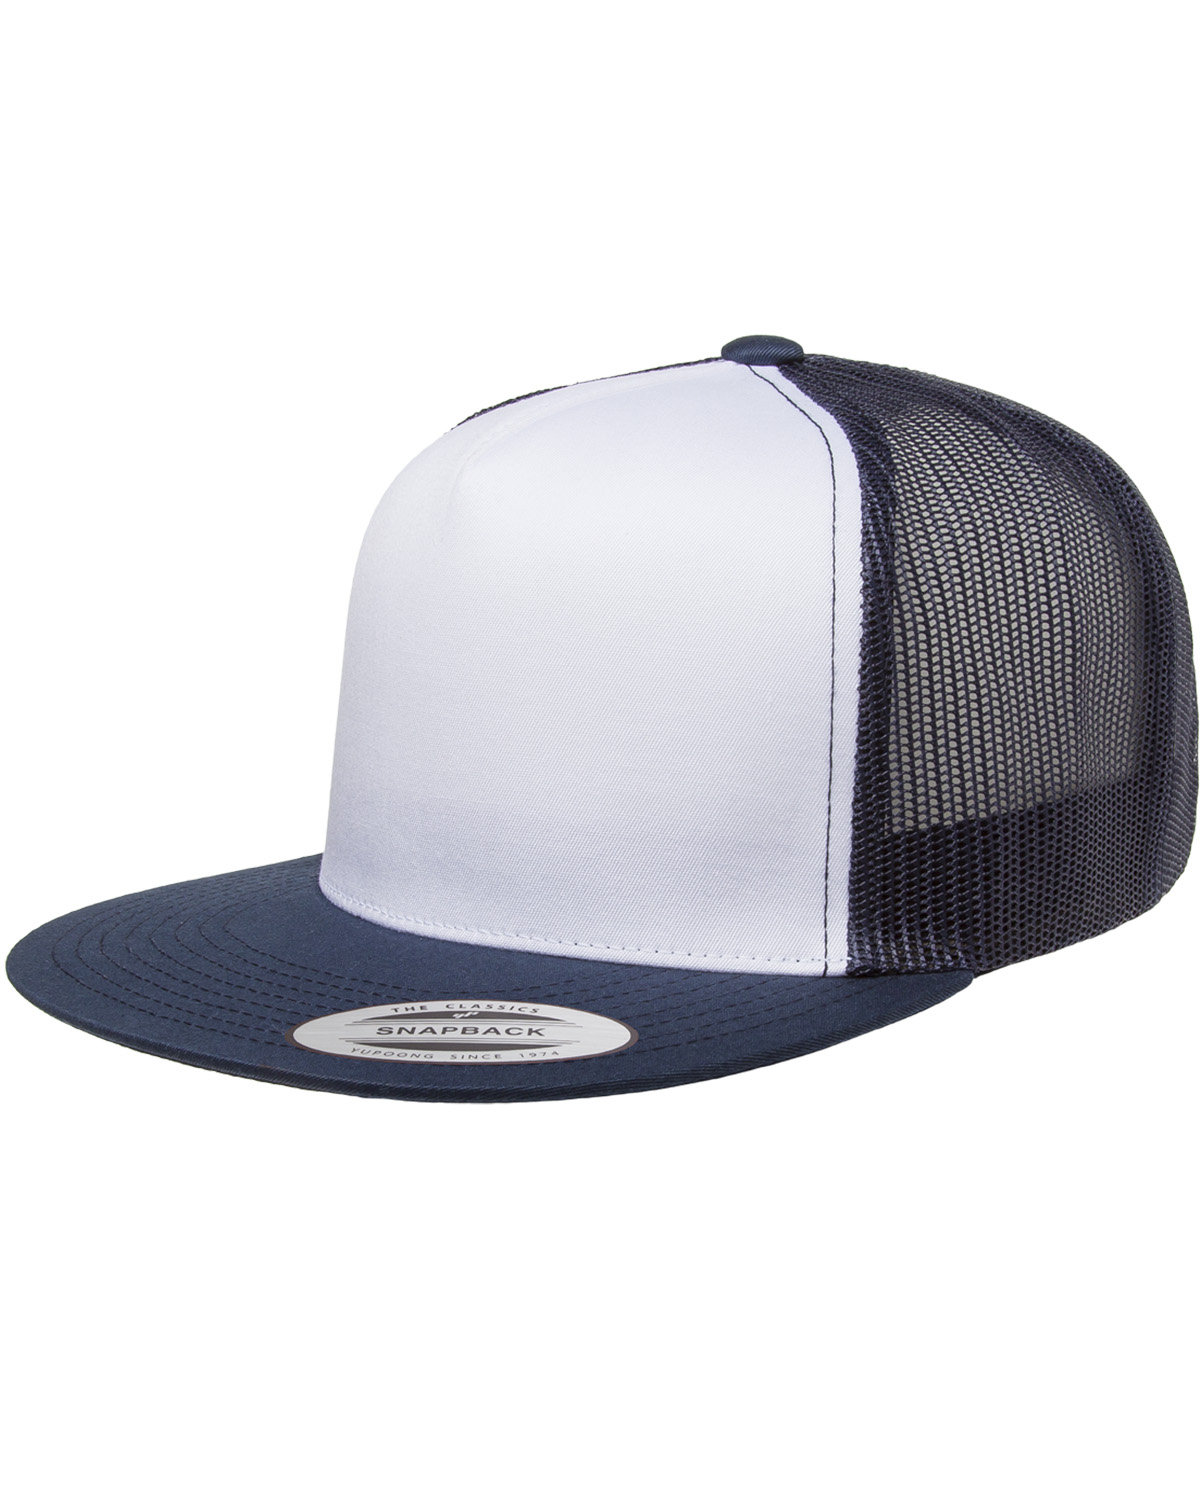 Yupoong Adult Classic Trucker with White Front Panel Cap NAVY/ WHT/ NAVY